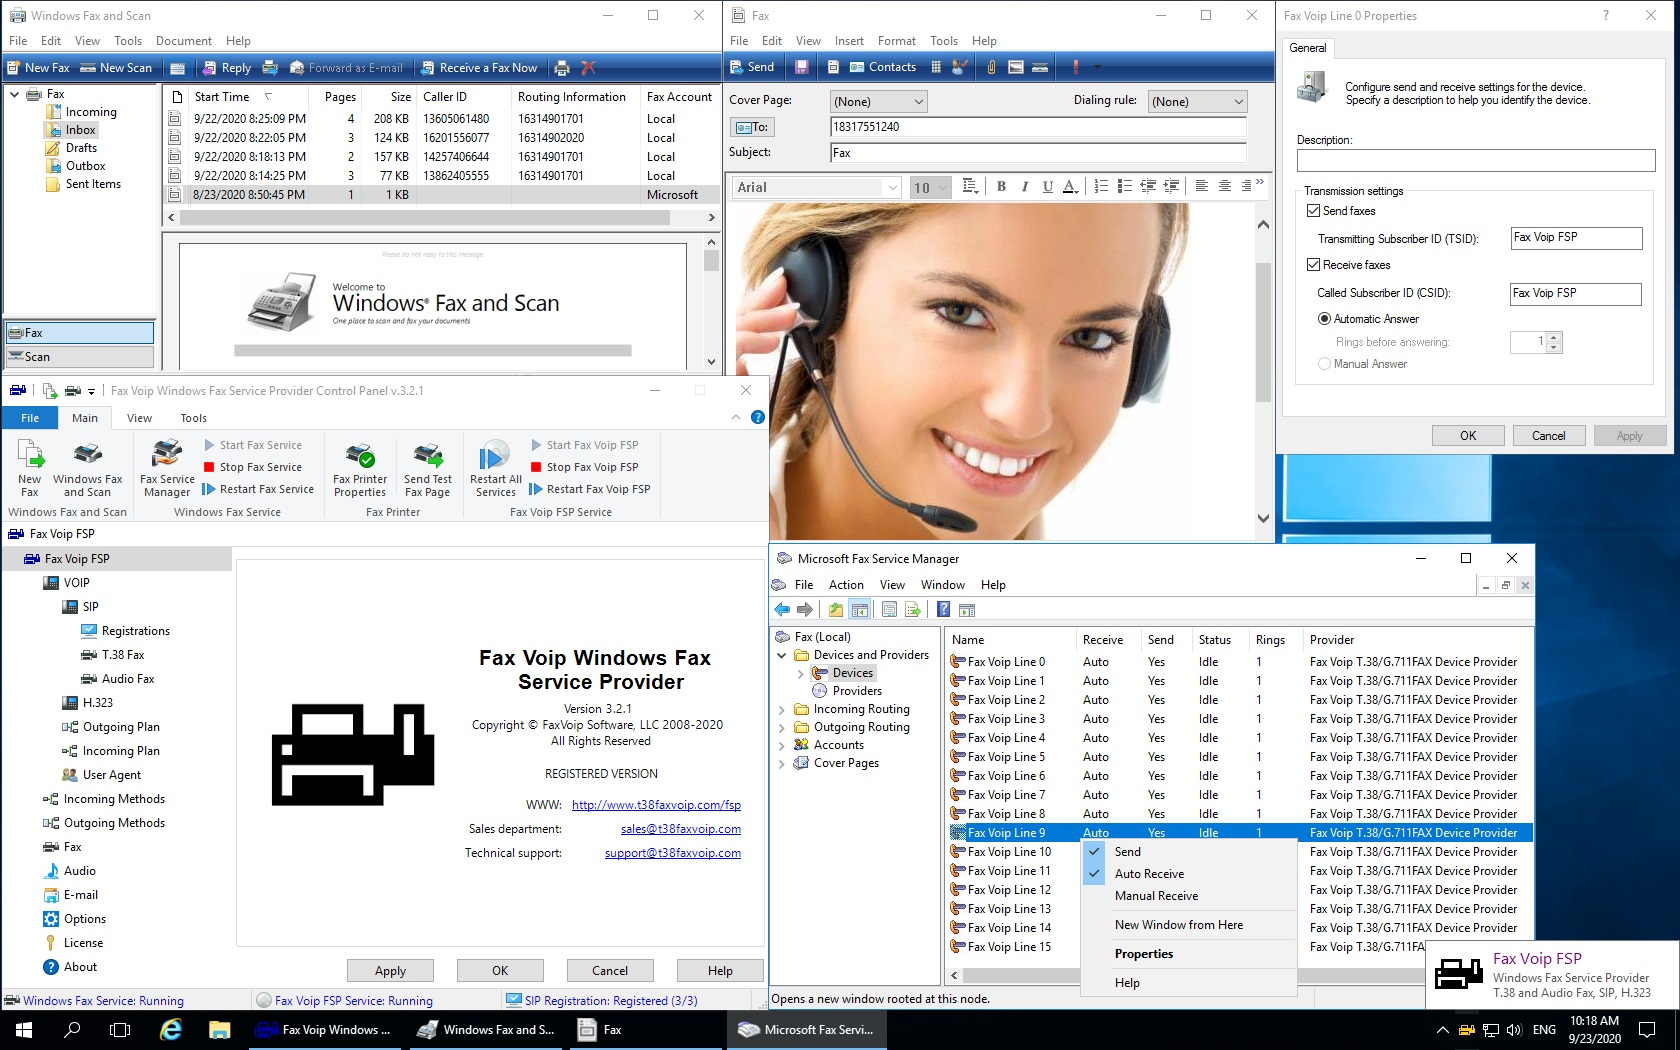 Click to view Fax Voip Windows Fax Service Provider 2.3.1 screenshot